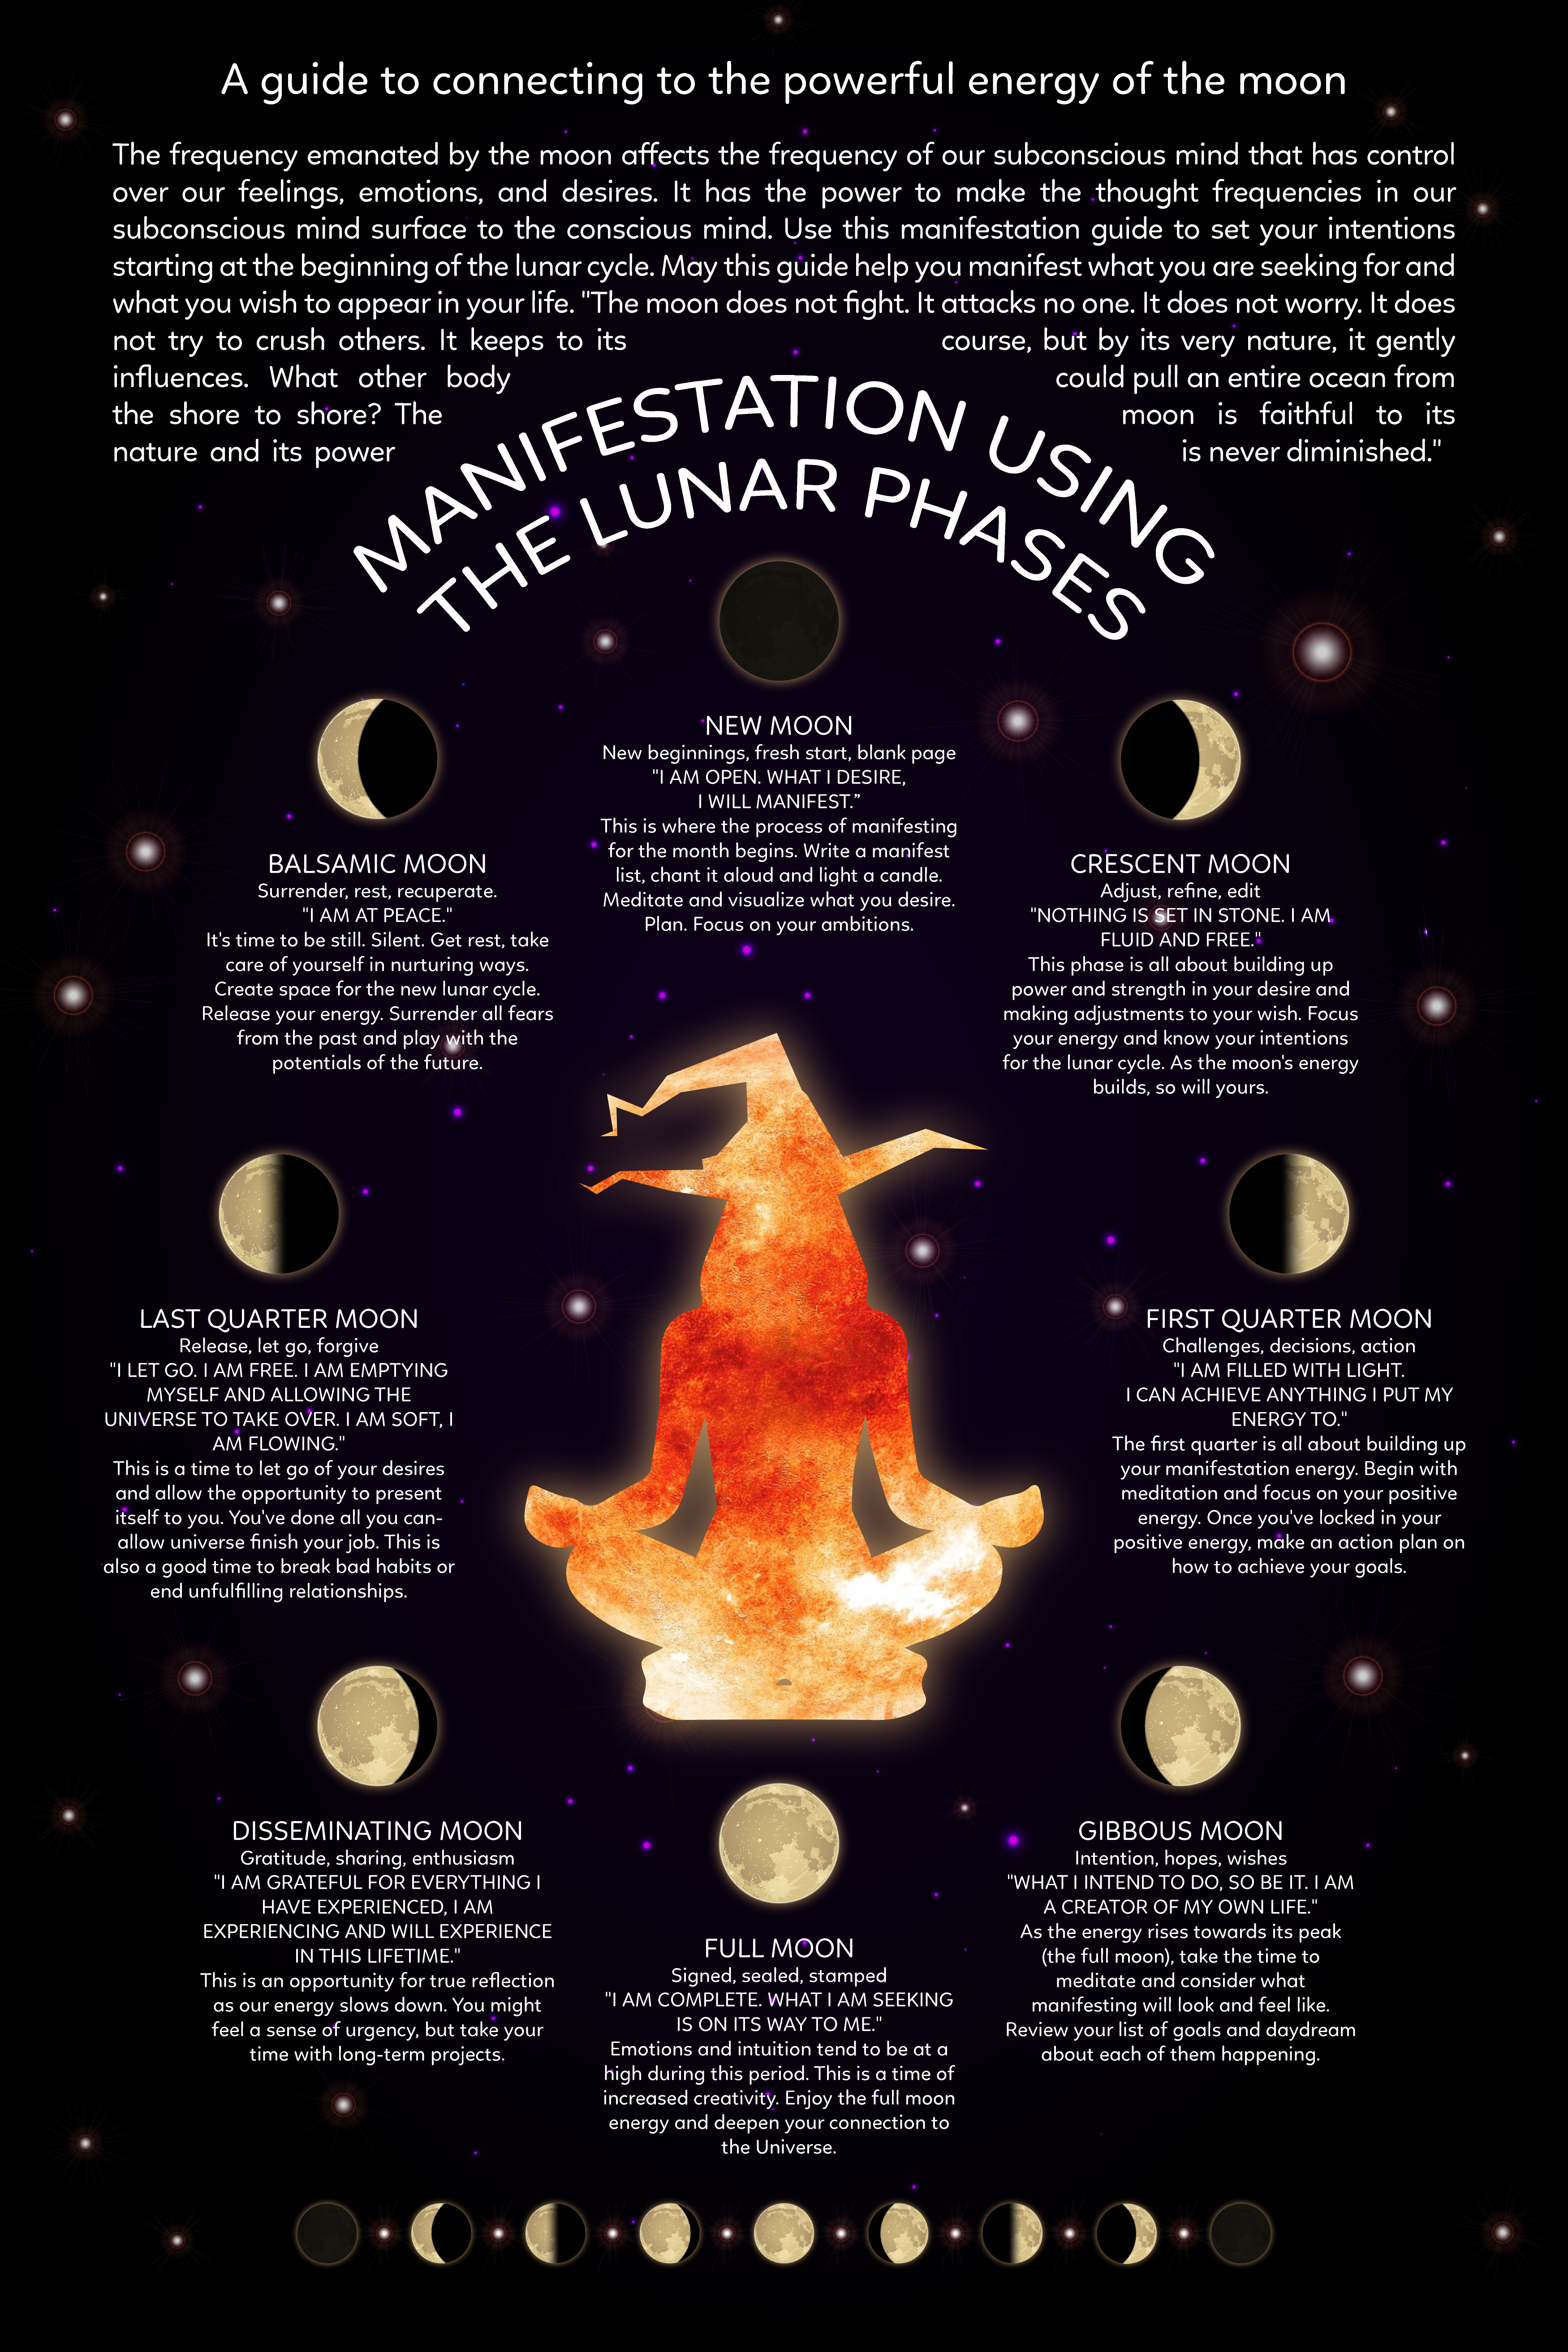 Witch Craft 101: Connecting To The Powerful Energy Of MoonManifestation Using the Lunar Phases